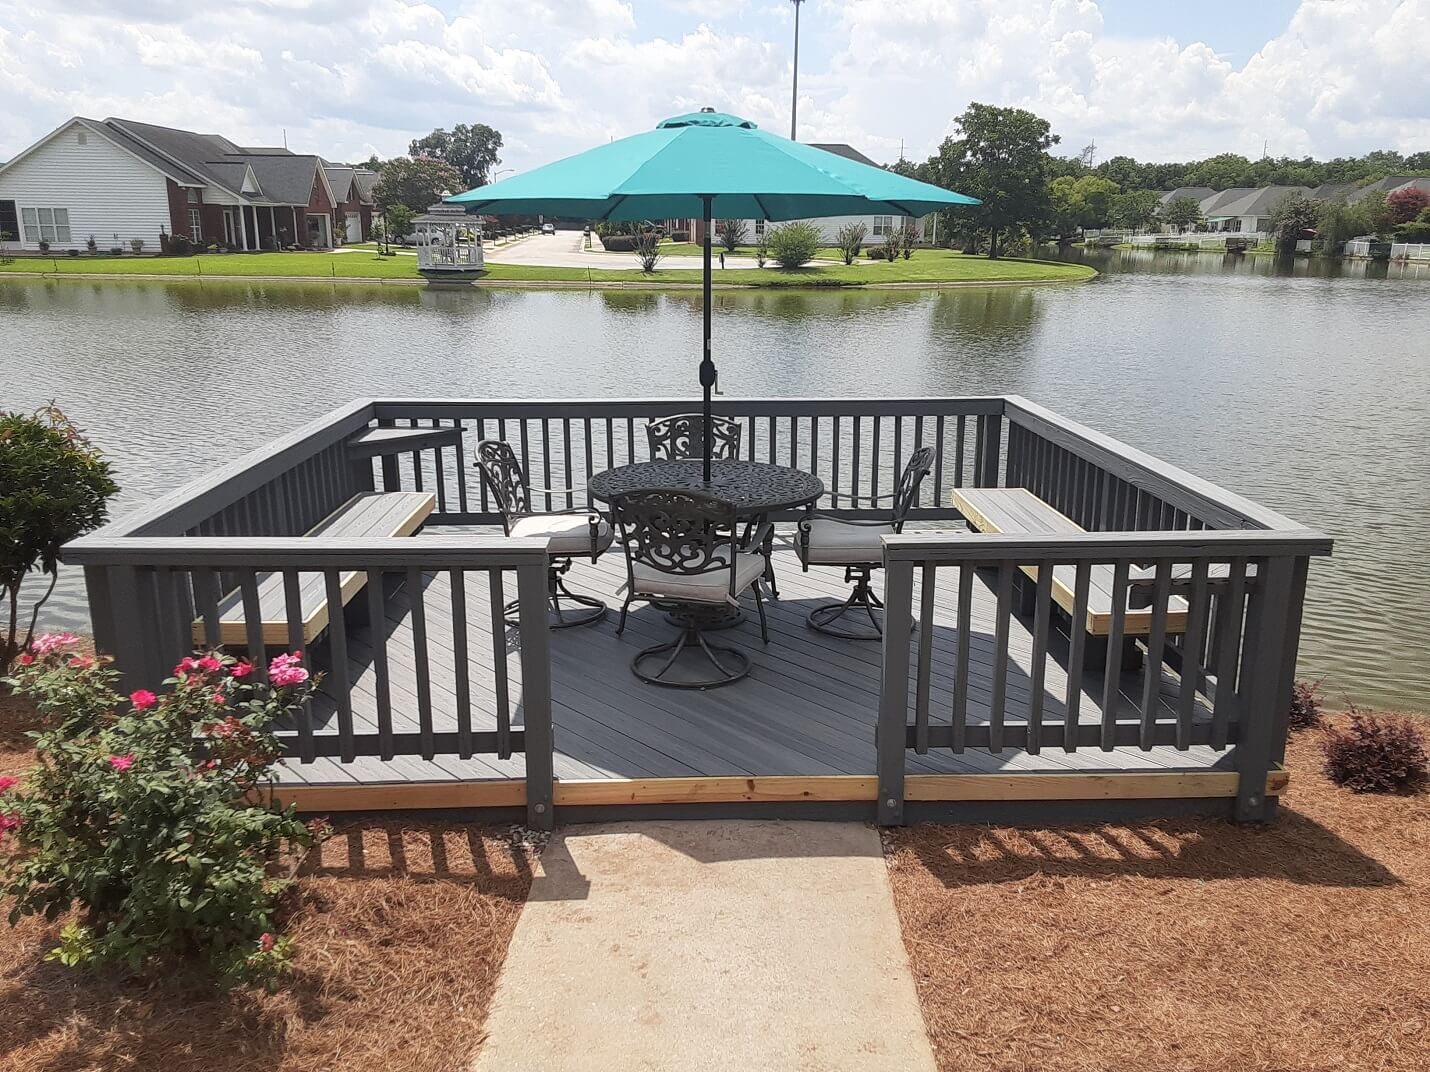 Custom dock with seating area overlooking water